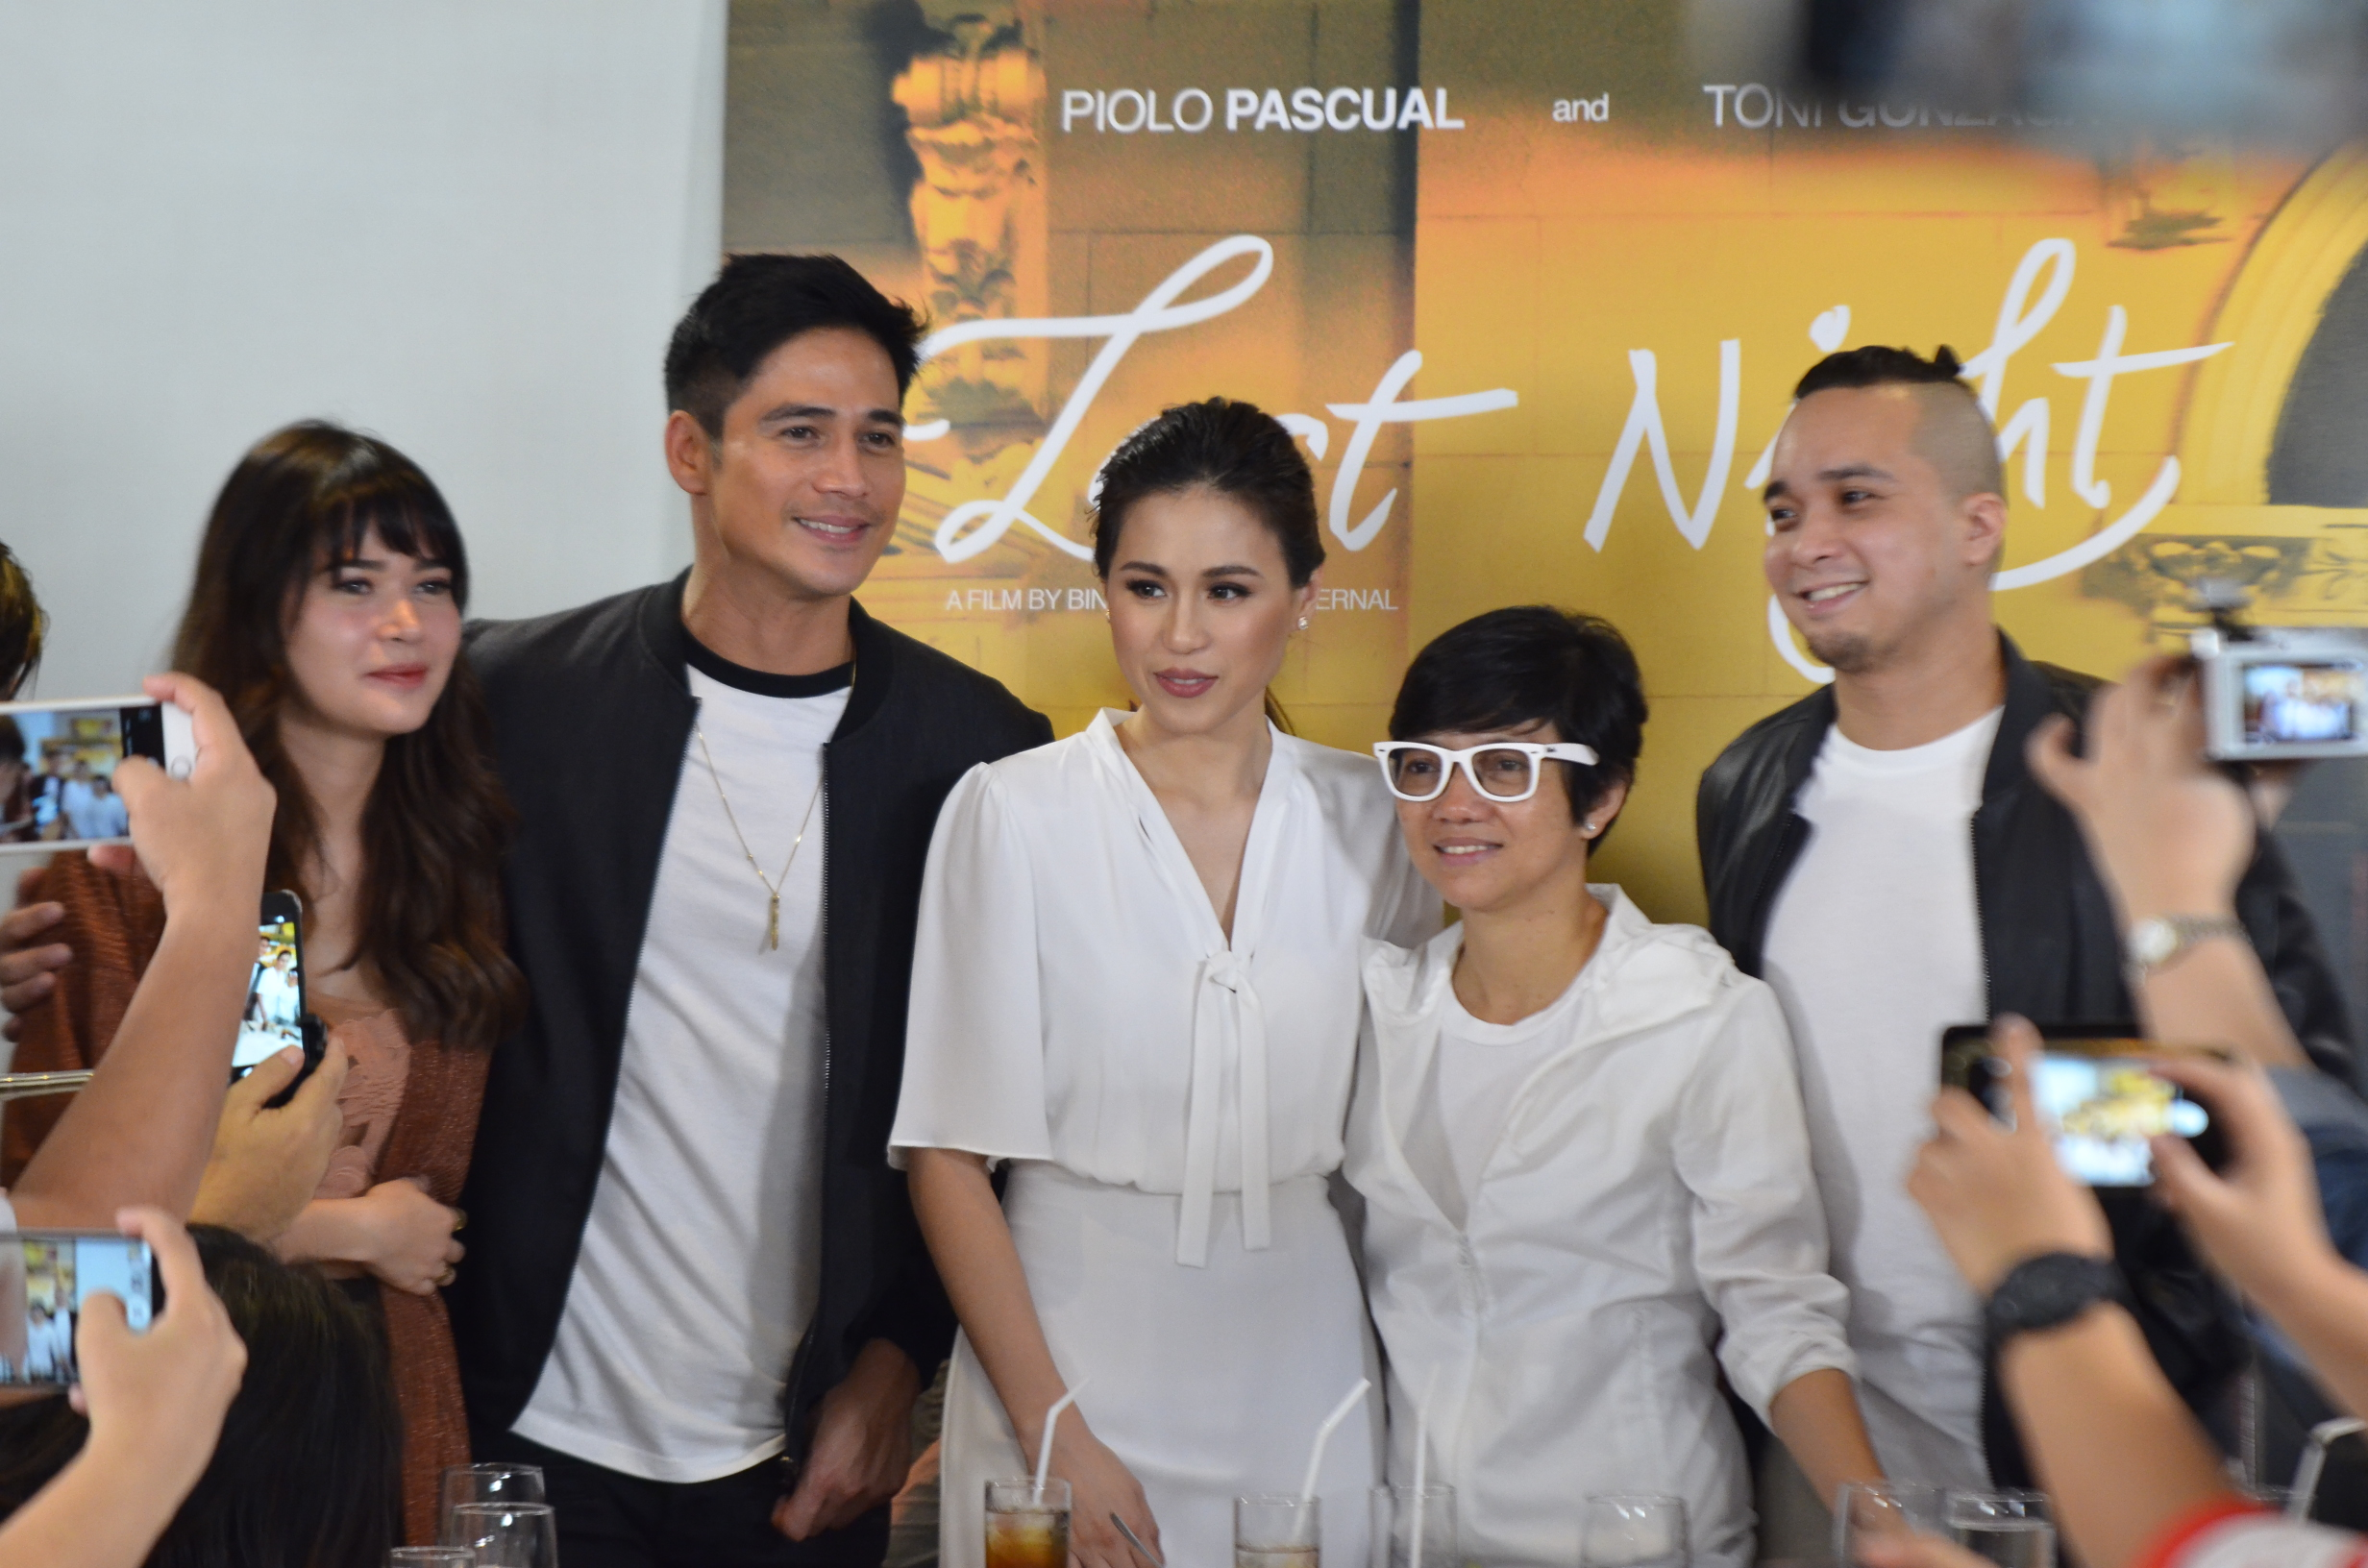 'LAST NIGHT'. Bela Padilla, Piolo Pascual, Toni Gonzaga, Joyce Bernal, and Neil Arce pose for photos during the bloggers' conference.